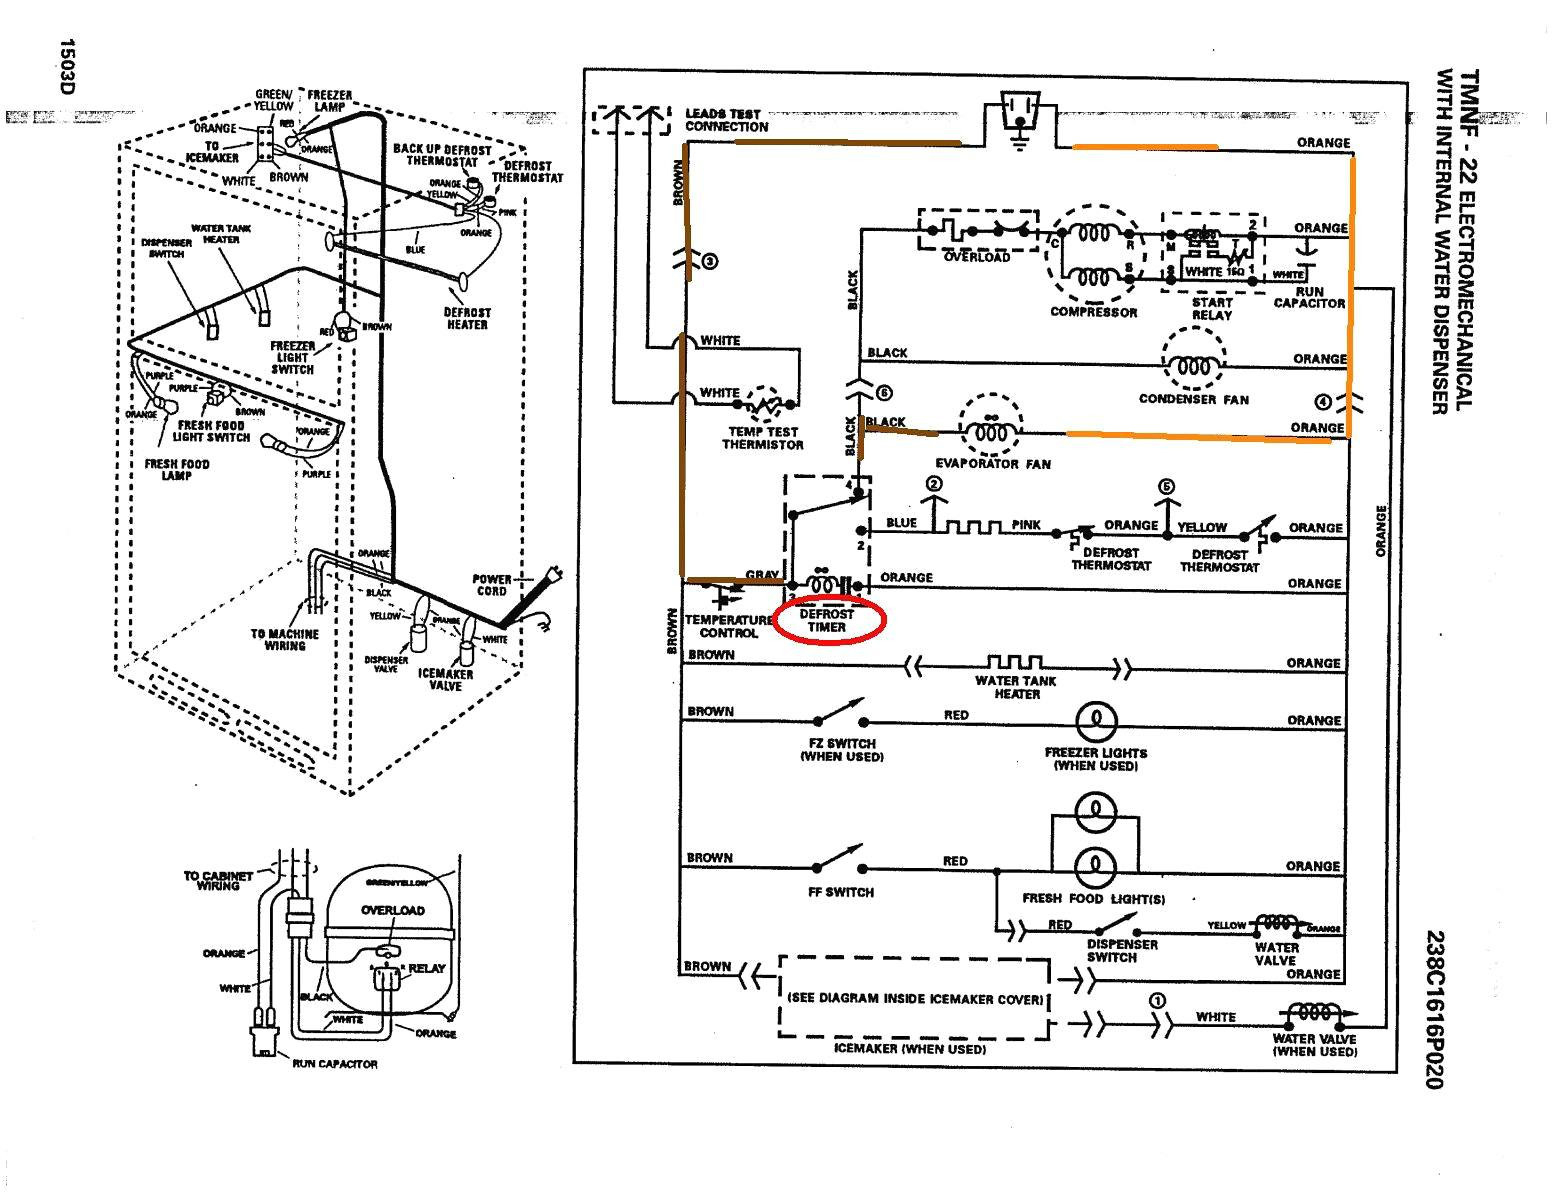 Gang Of Schematic Wiring - pin help wiring 3 way pilot ...  Gang Schematic Wiring Diagram on